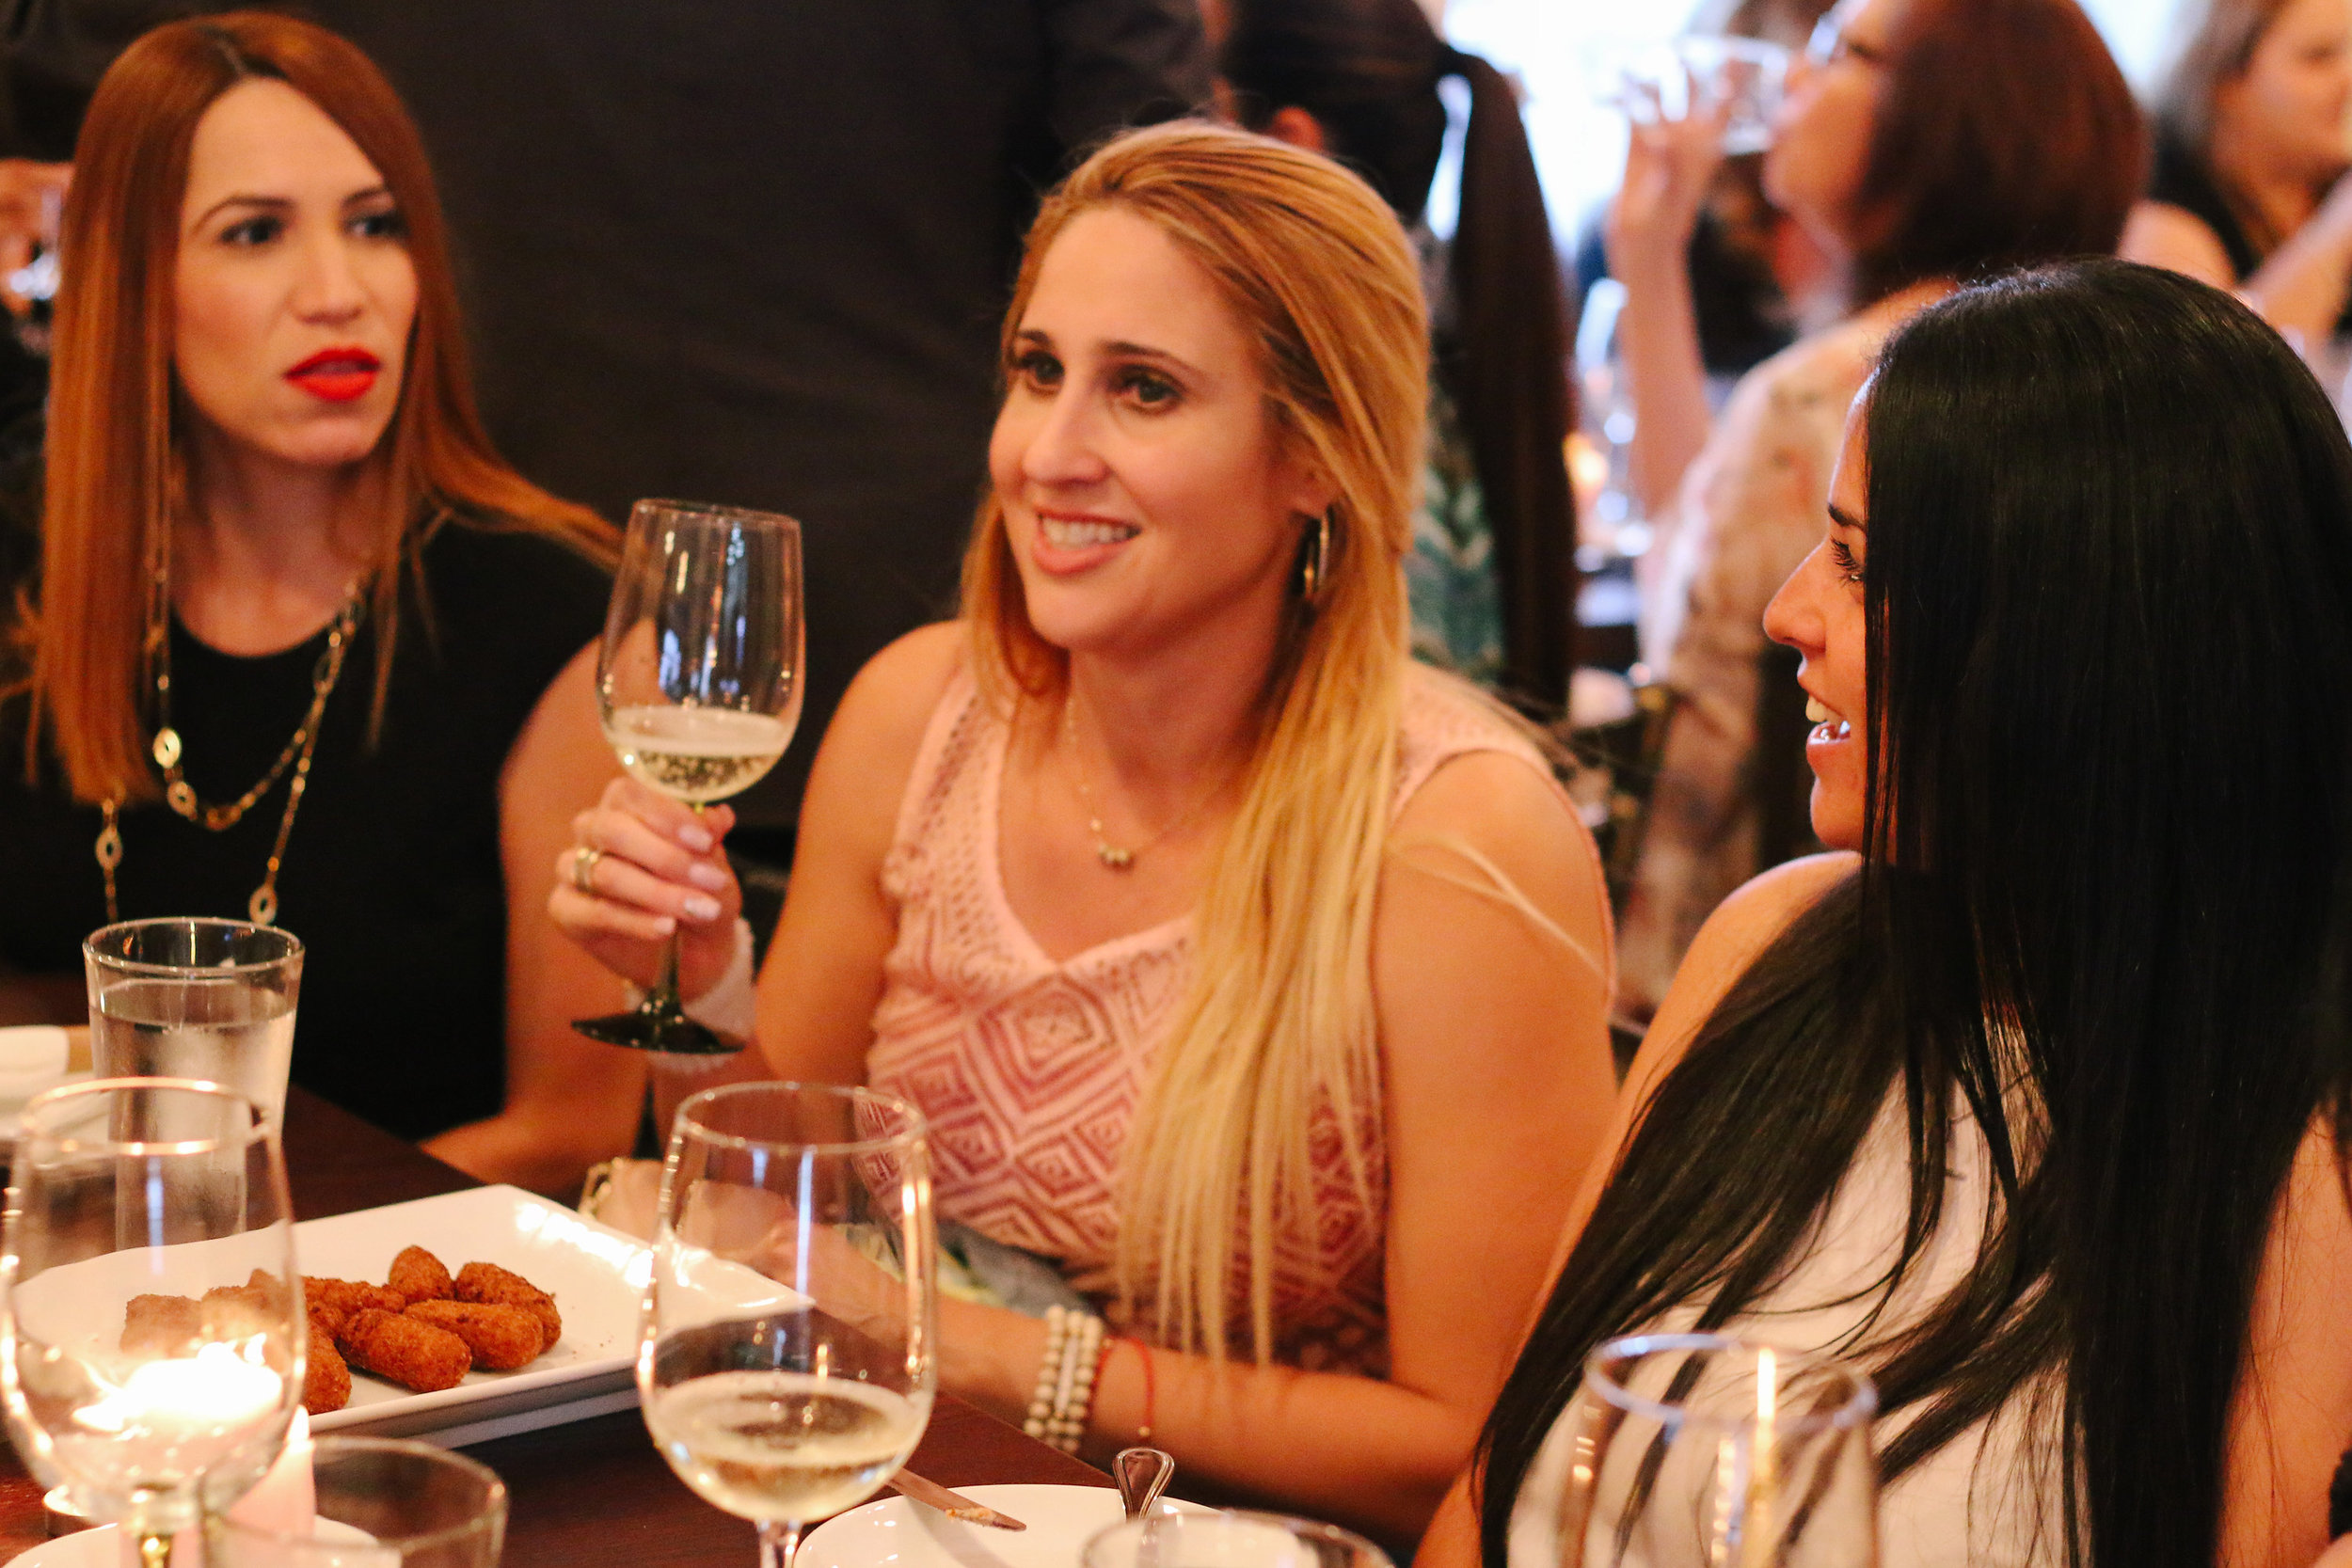 Women Who Wine_Uncorked Conversations_Off The Mile_Miami Wine Events_Wine Tasting Miami_24.jpg